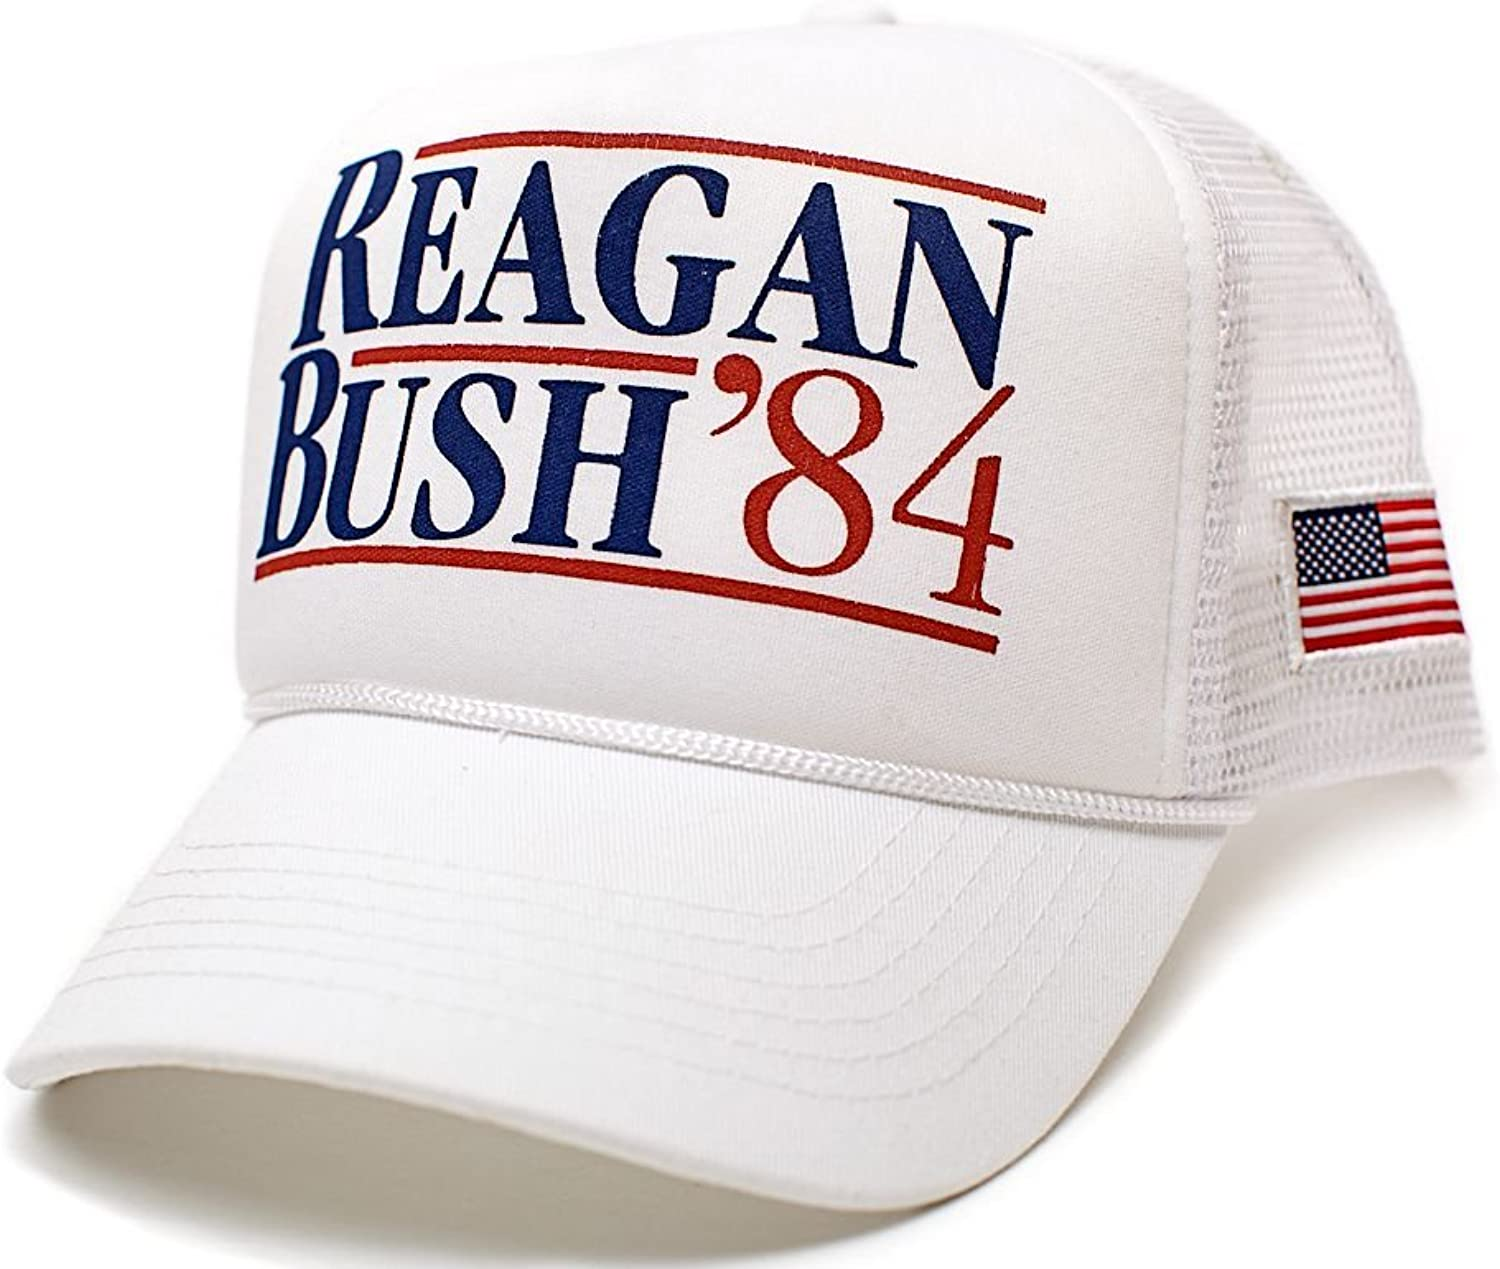 Reagan Bush 84 Hat Back To Back World War Champs USA Flag Unisex Adult White Solid